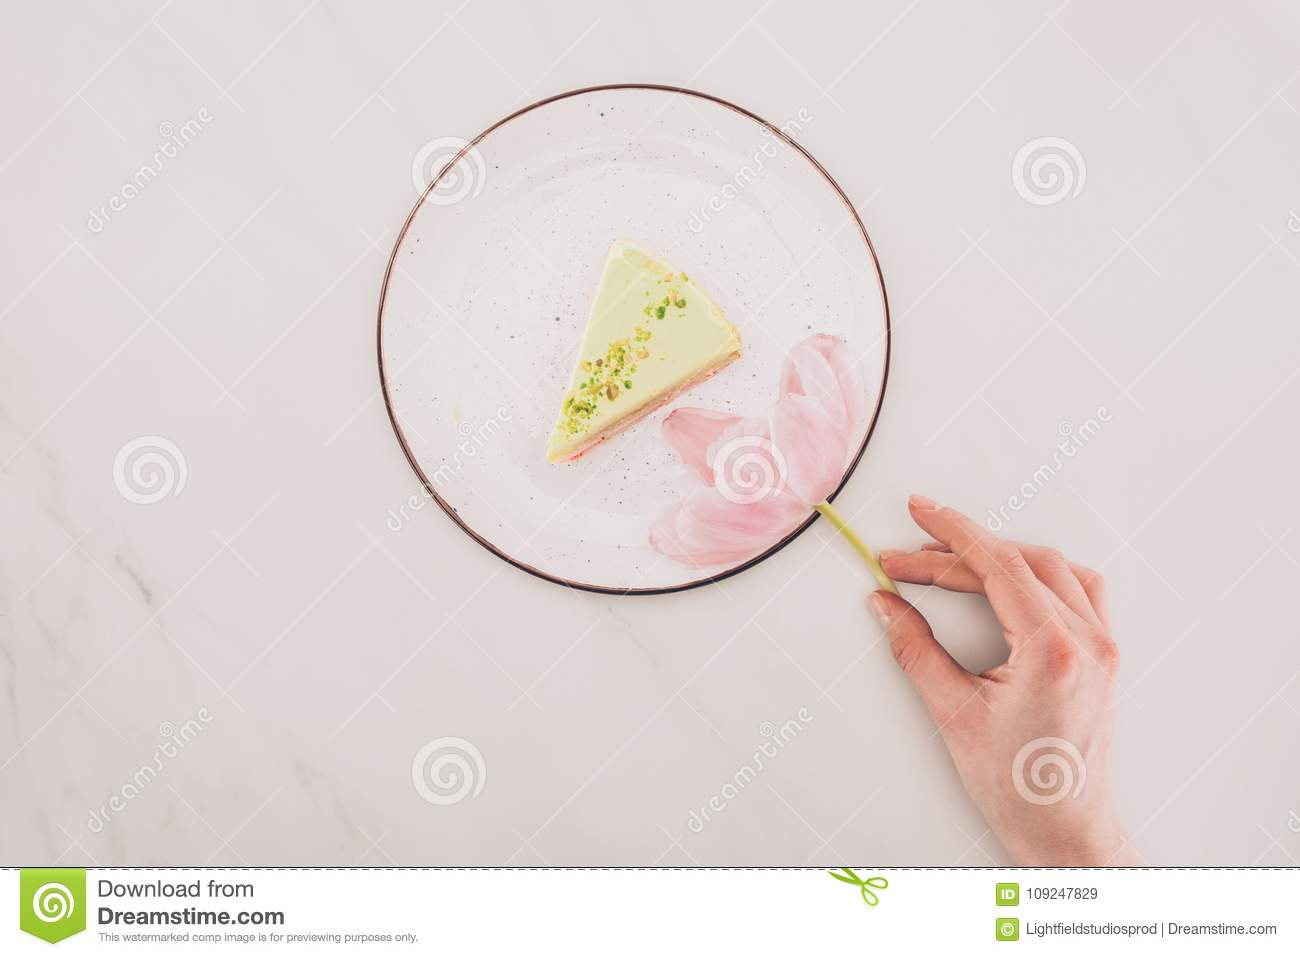 Female hand, flower and piece of cake on plate on white tabletop